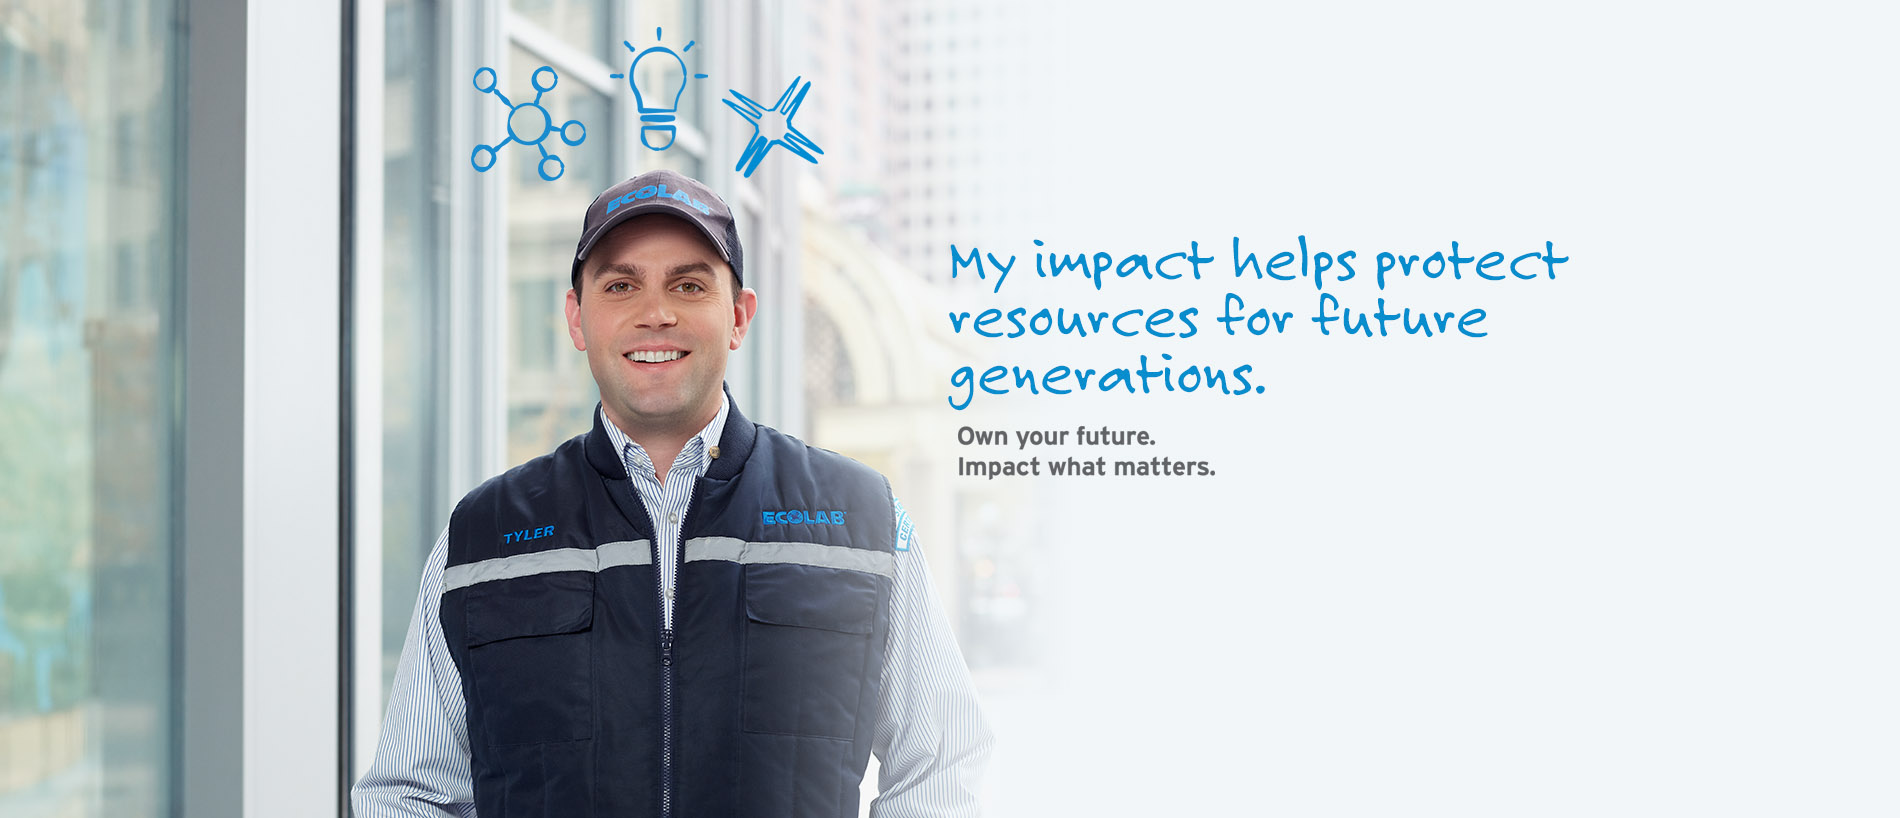 My impact helps protect resources for future generations. Own your future. Impact what matters.